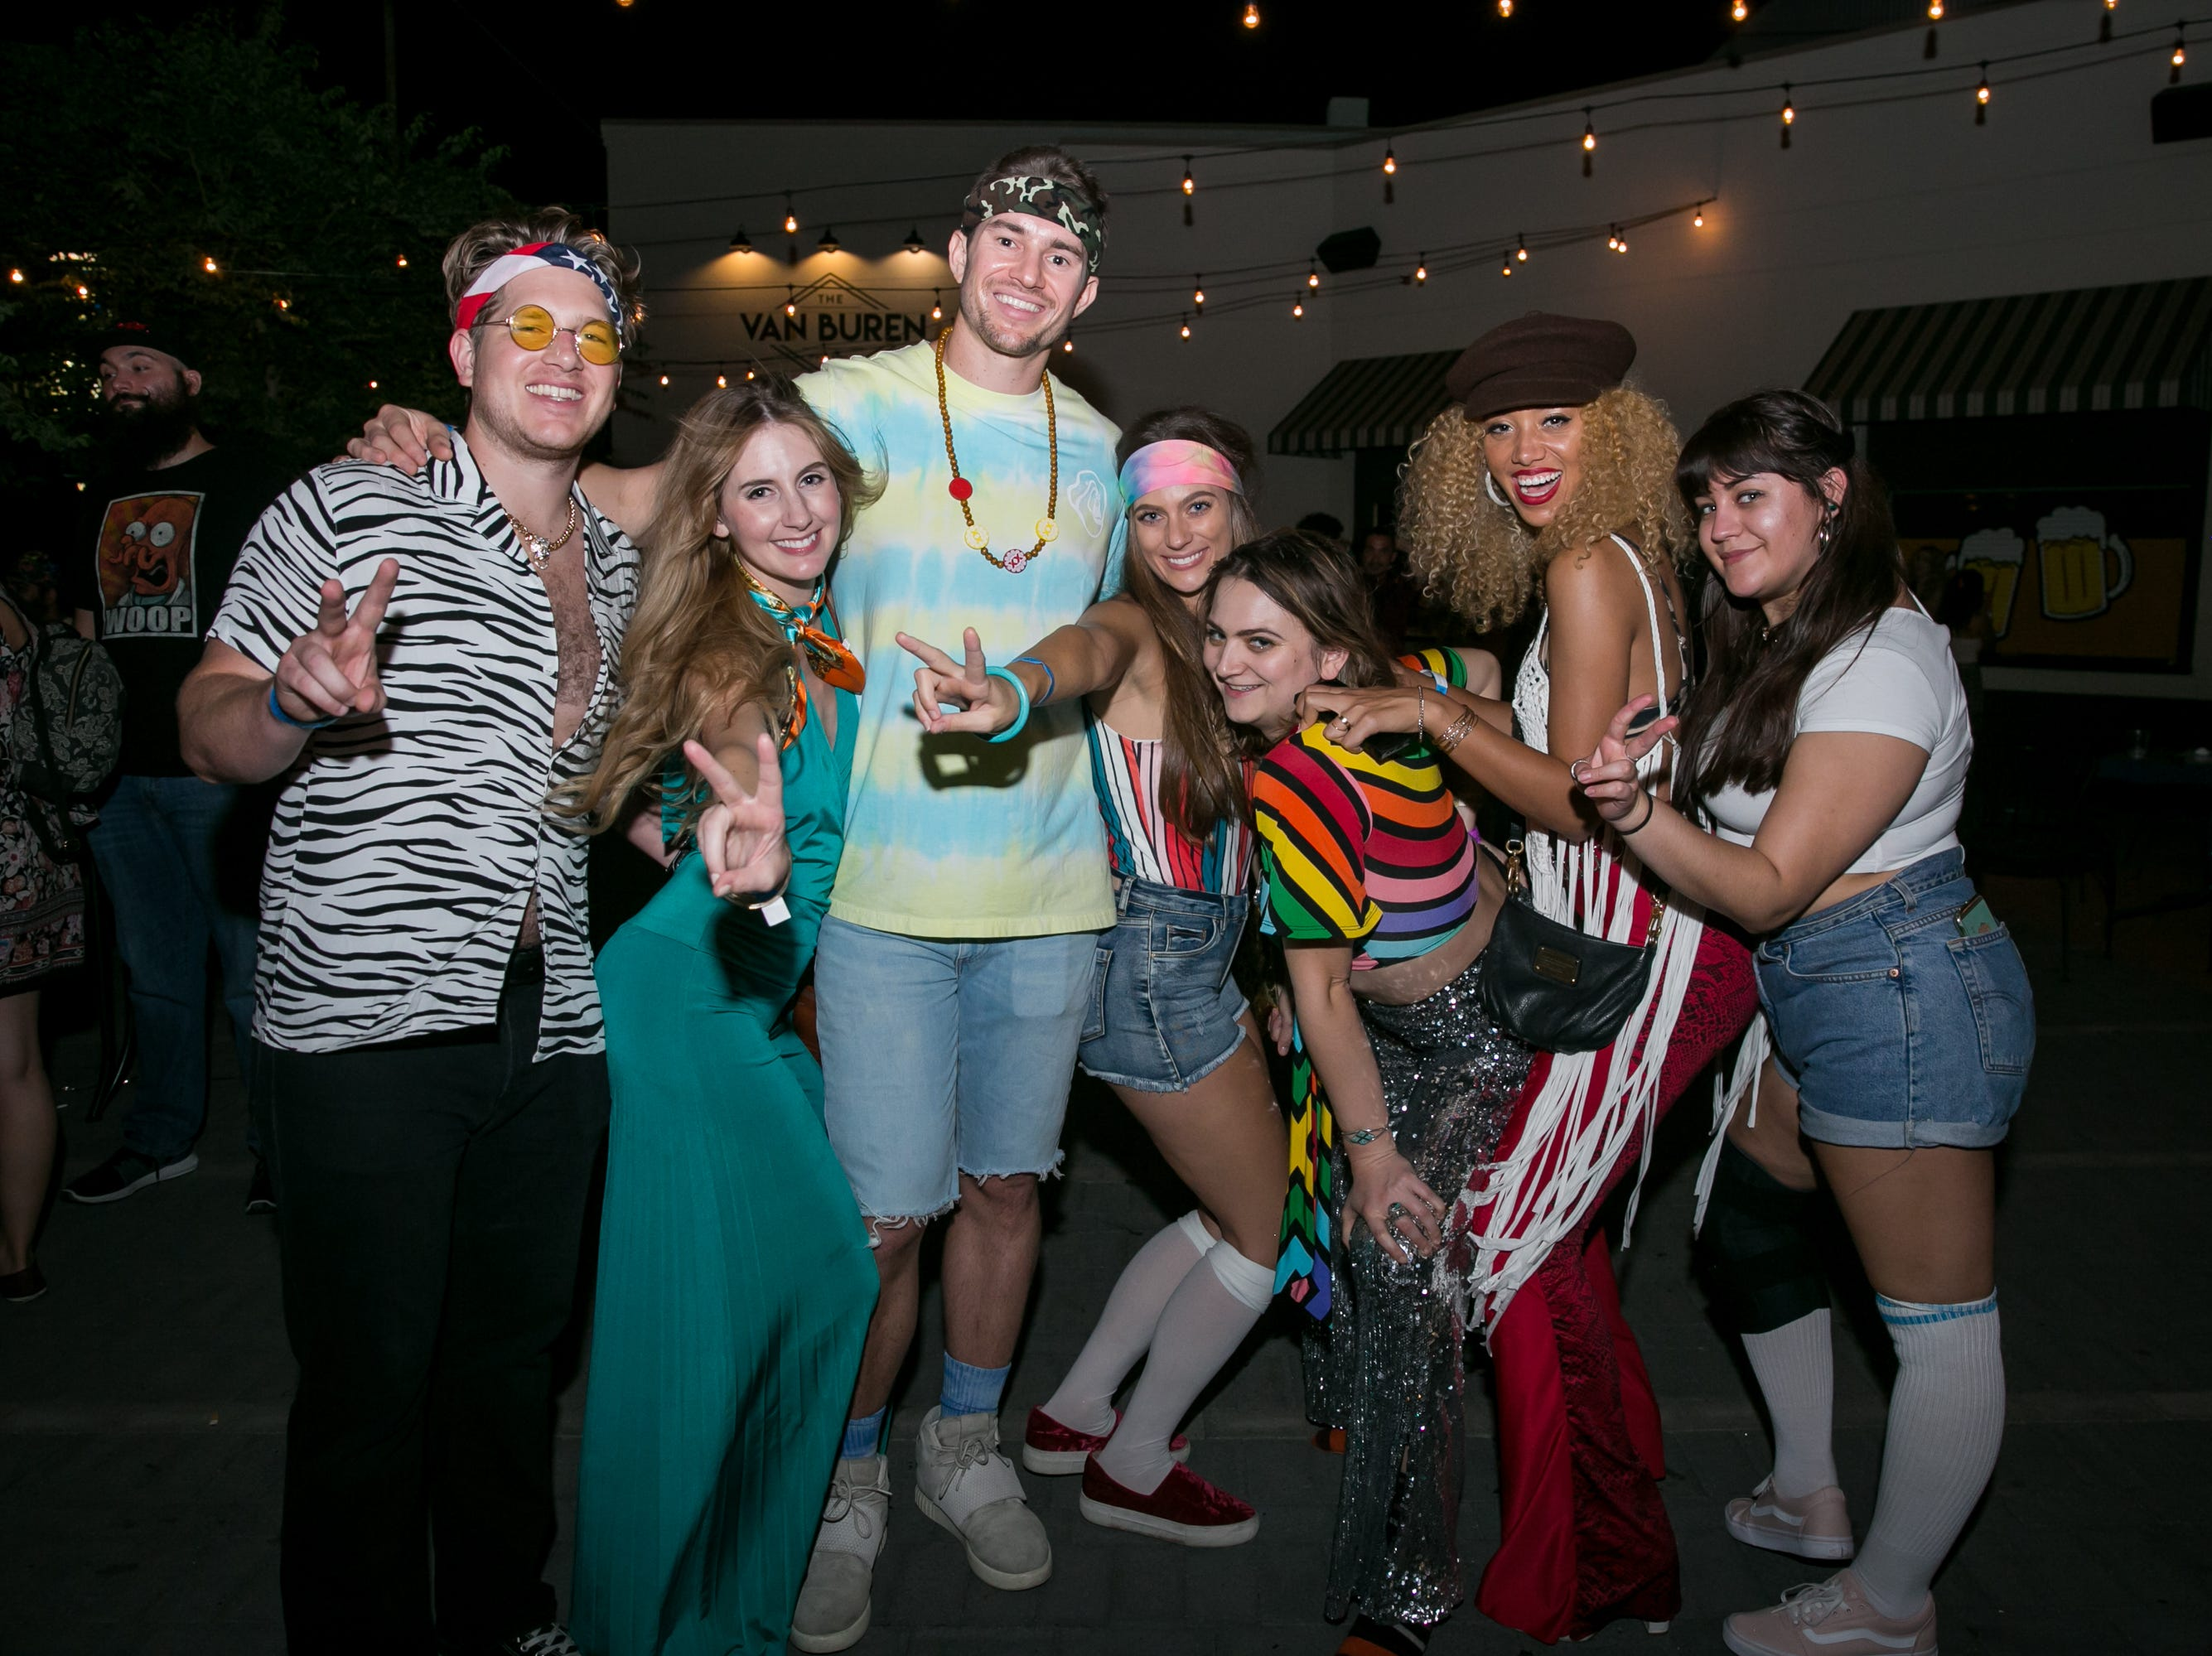 These pals were a blast from the past during The Van Buren's Roller Disco Dance Party on Friday, September 21, 2018.